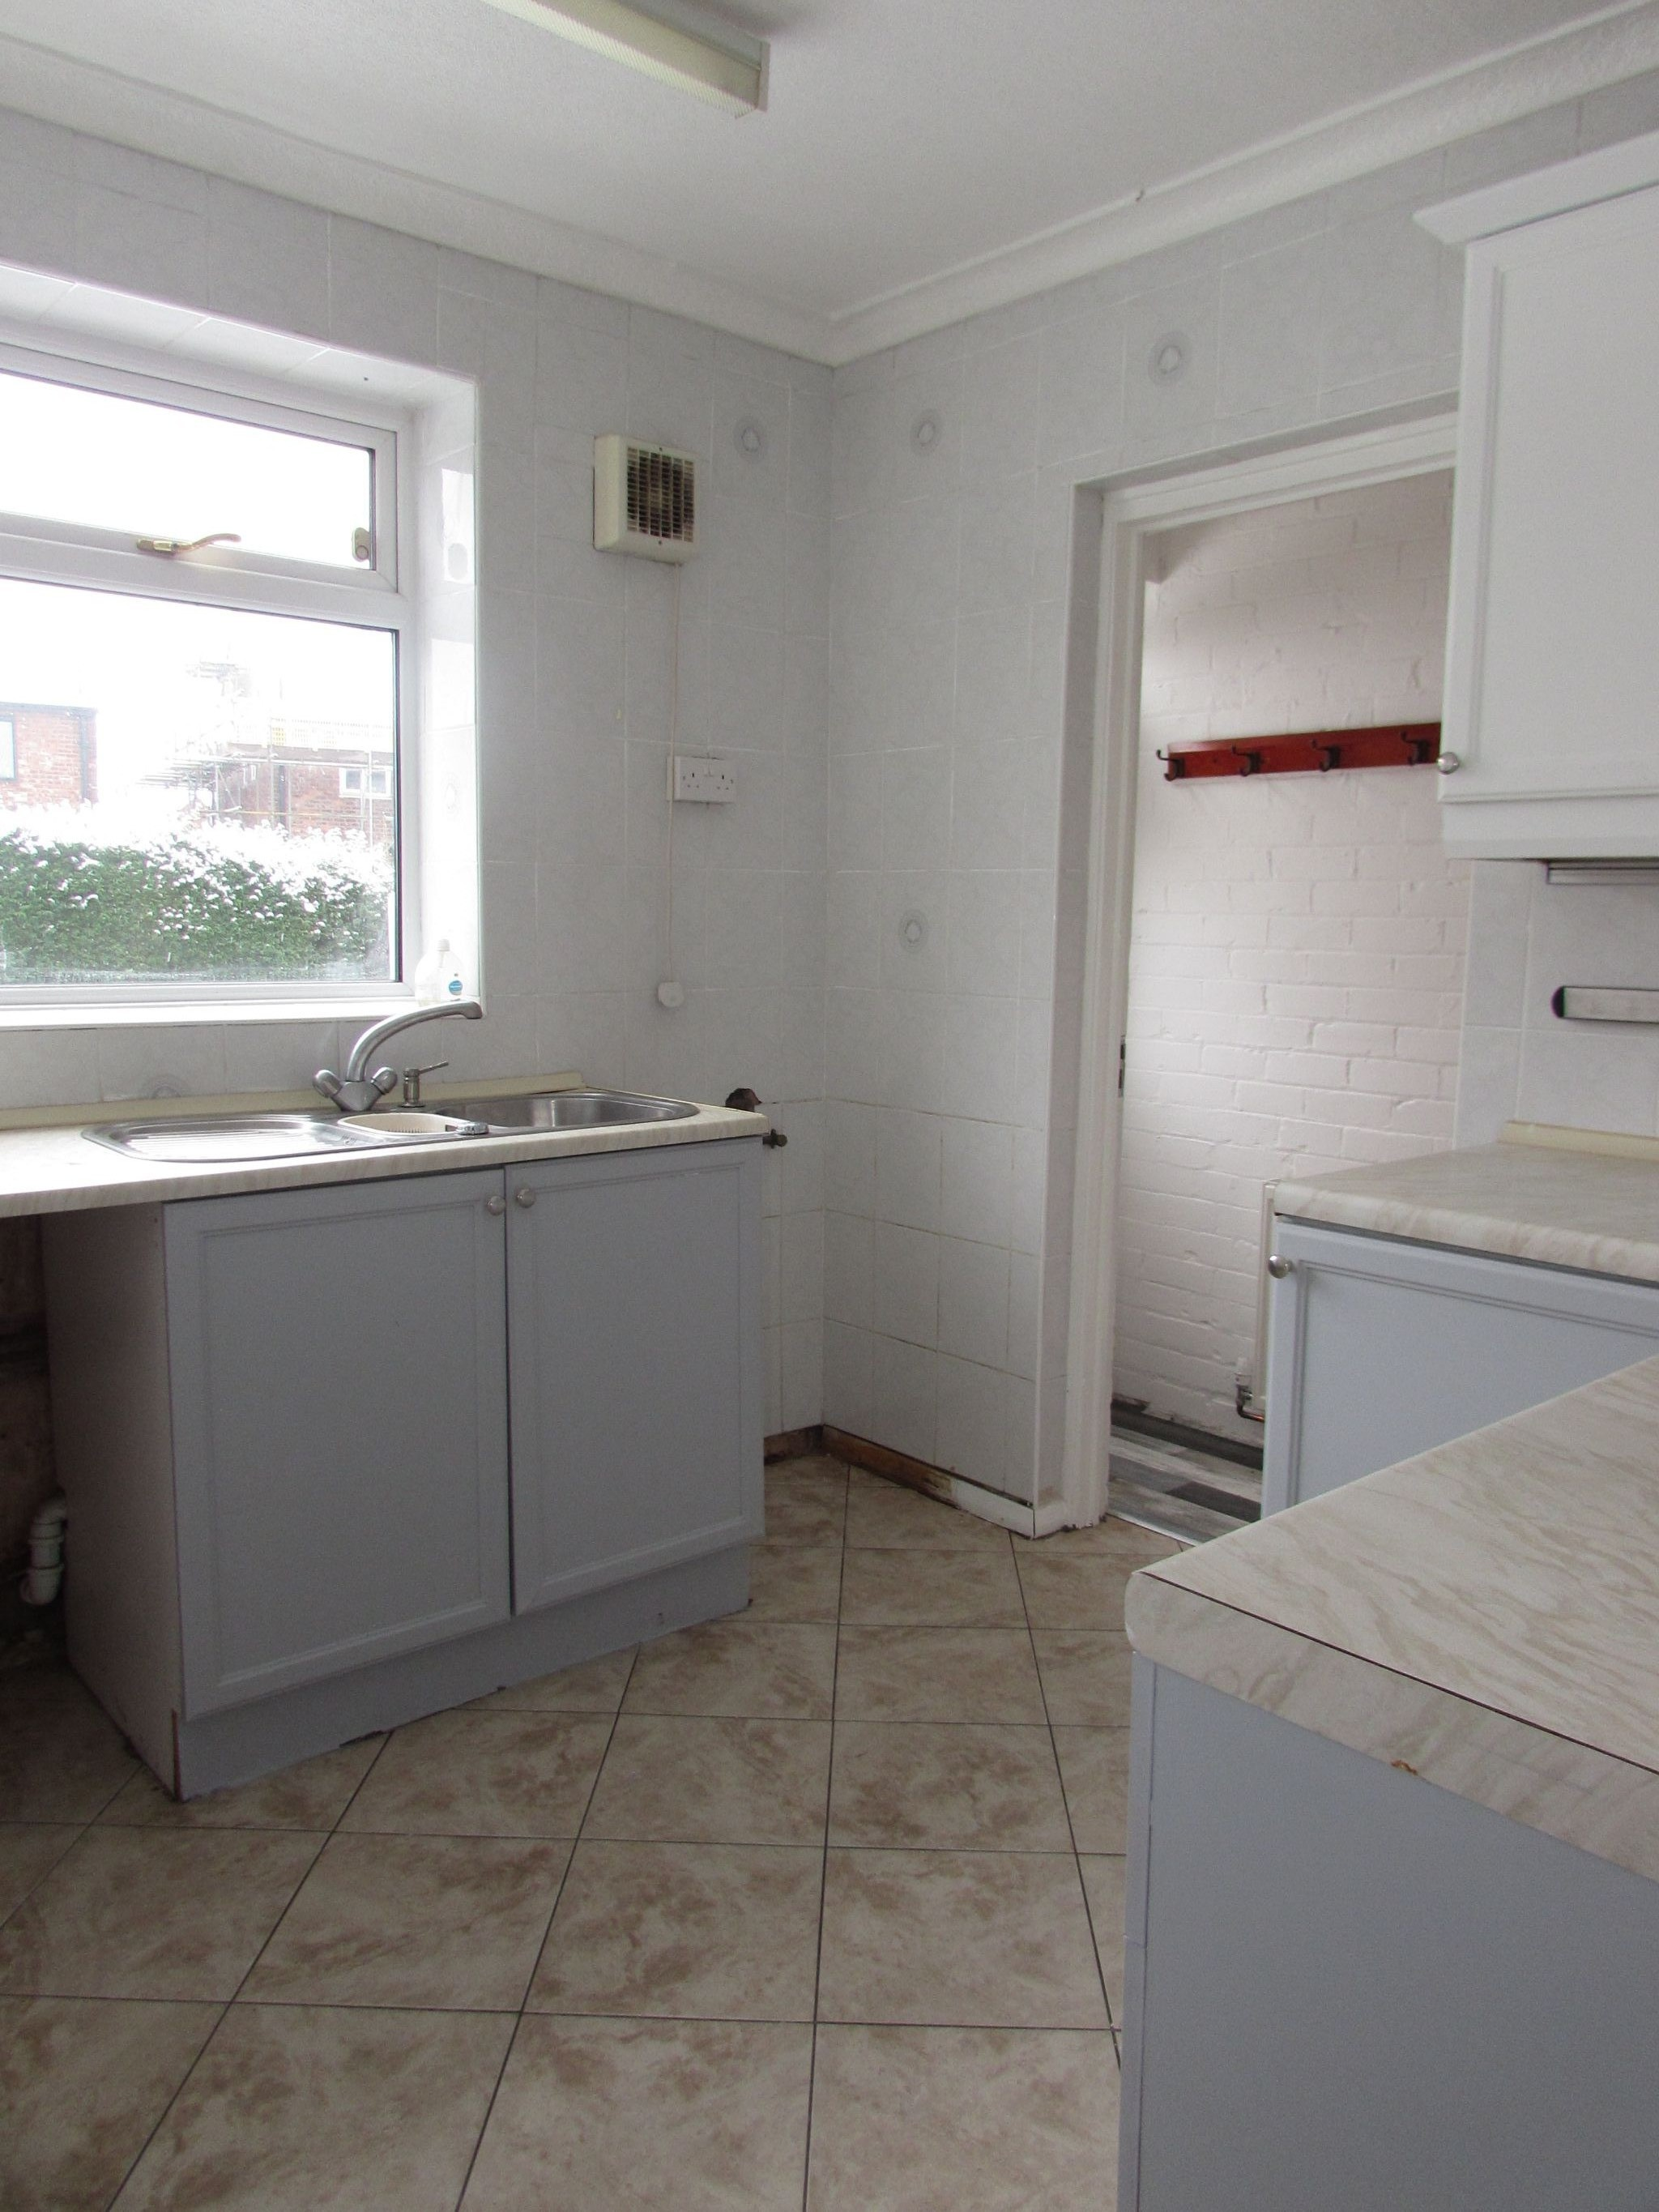 4 Bedroom End Terraced House To Rent - Kitchen